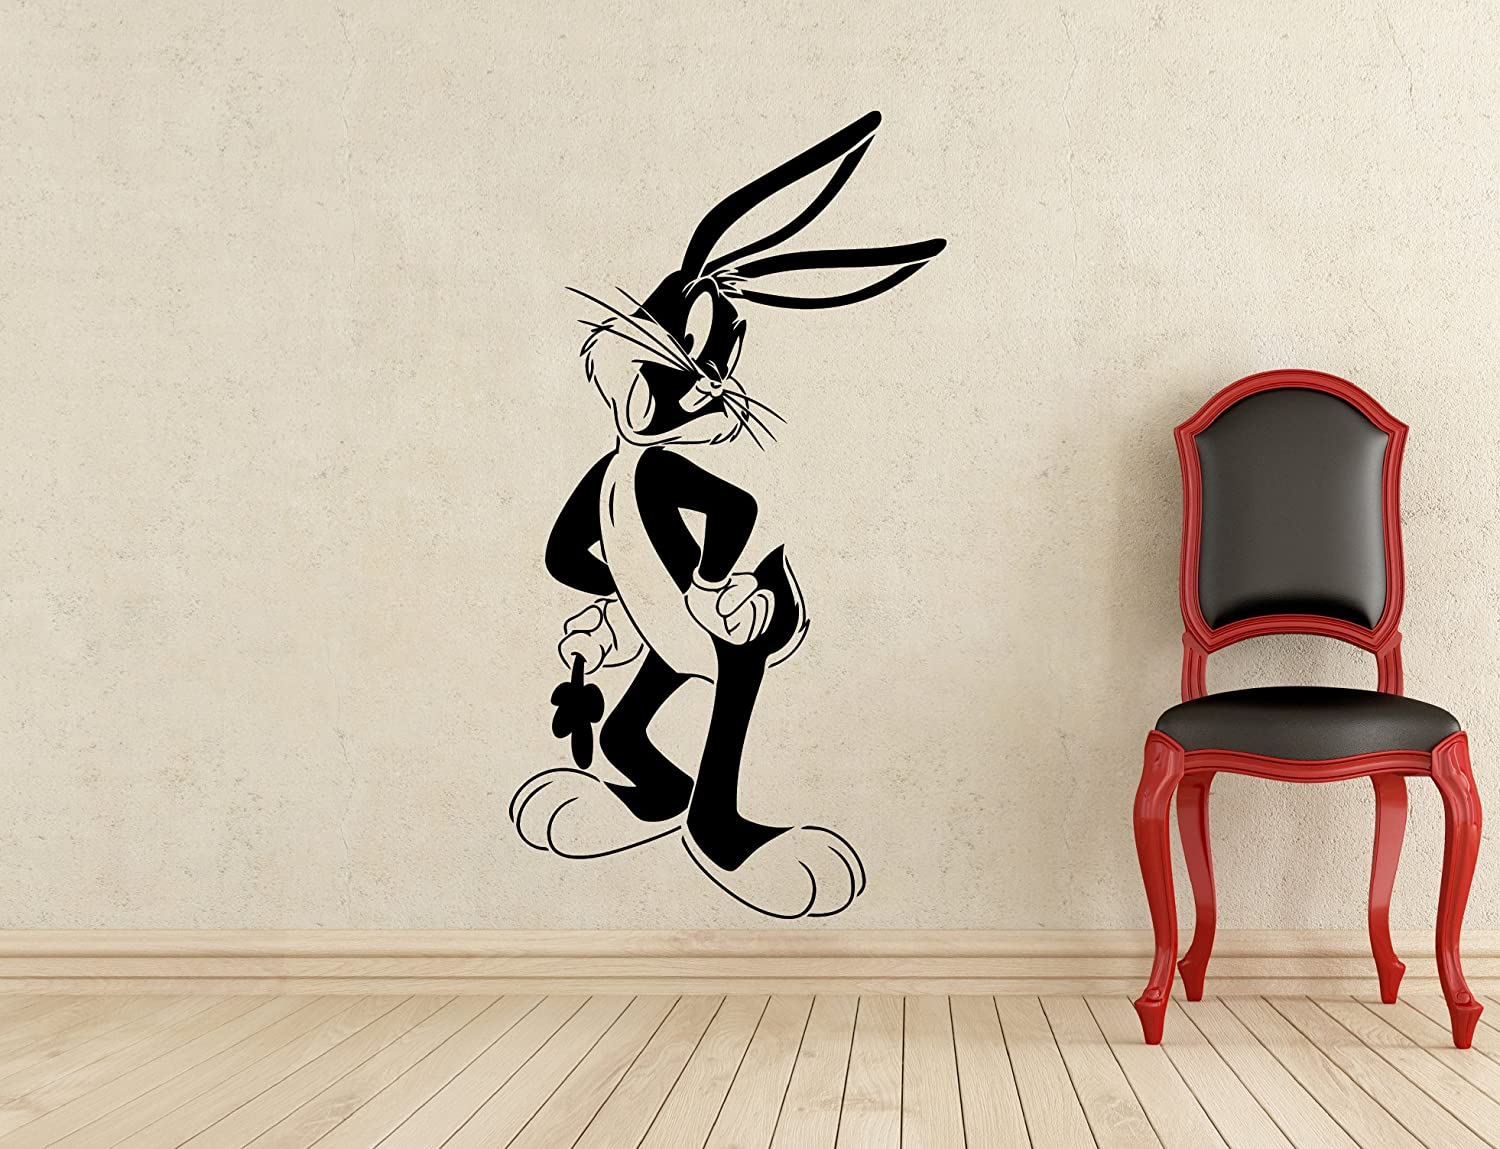 Bugs Bunny Wall Decal Looney Tunes Kids Cartoon Vinyl Sticker Nursery Room Interior Decoration Home Kids Room Art Design Removable Waterproof Mural (416z)